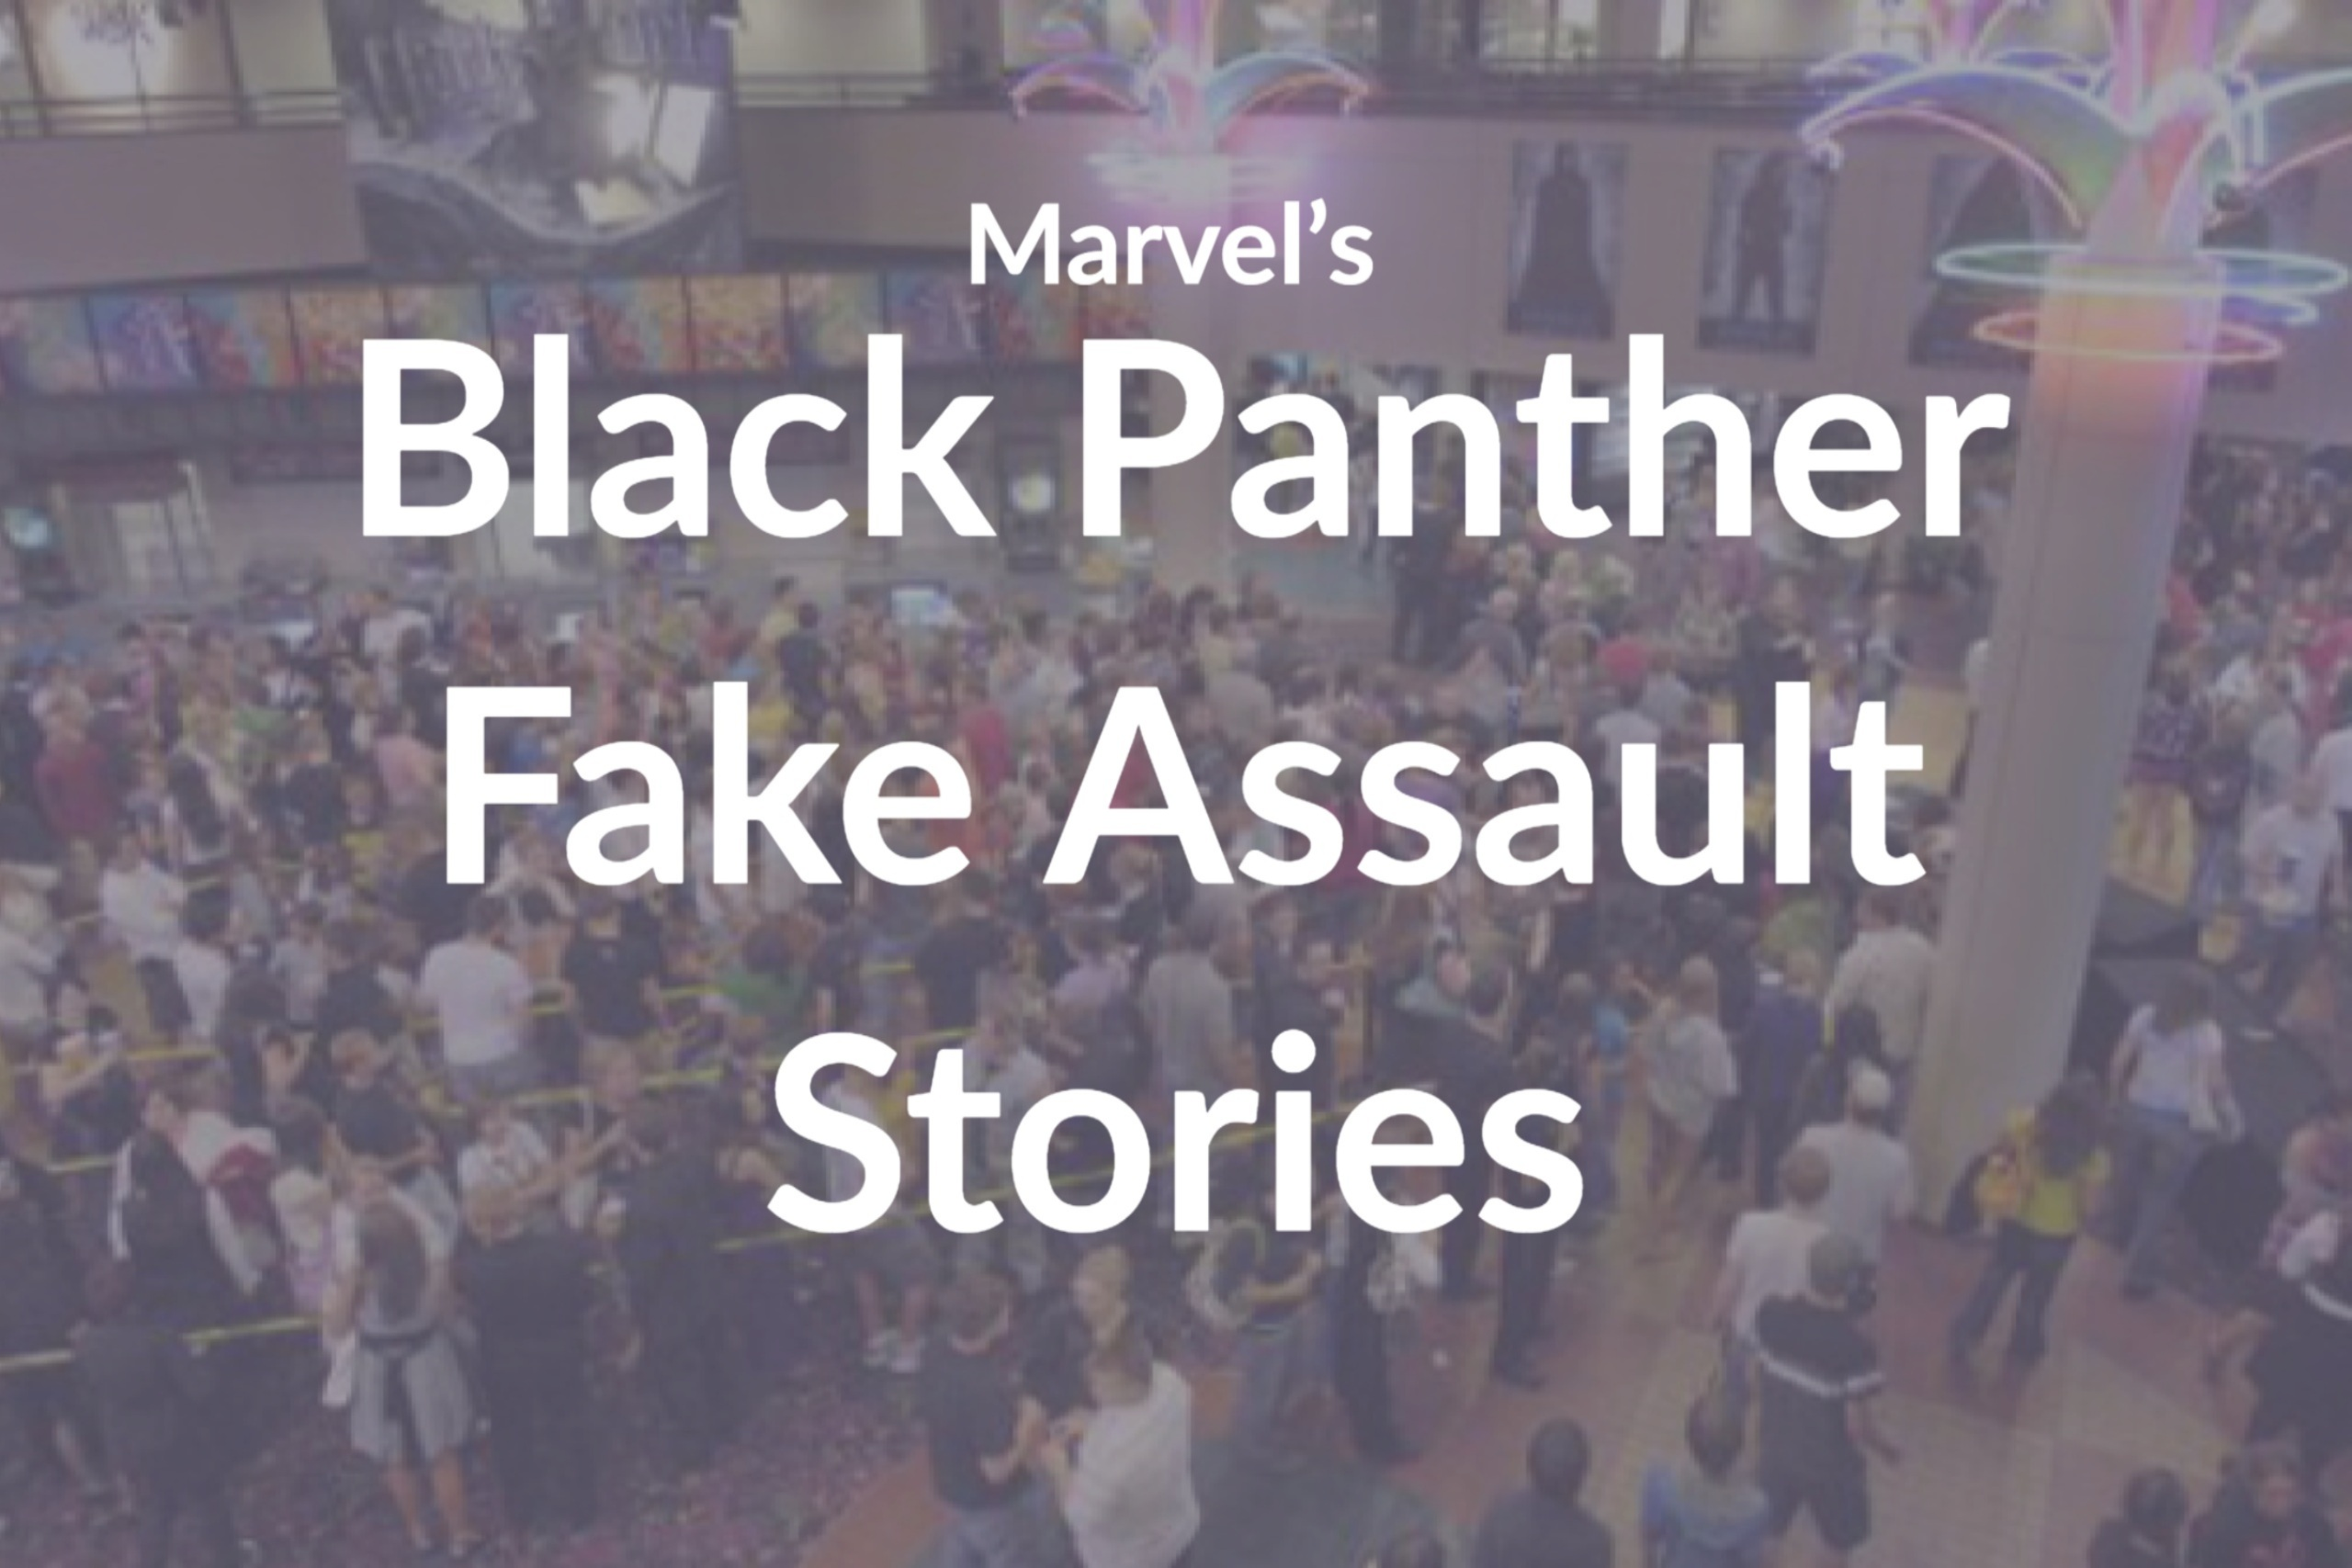 Marvel's Black Panther Fake Assault Stories on Twitter